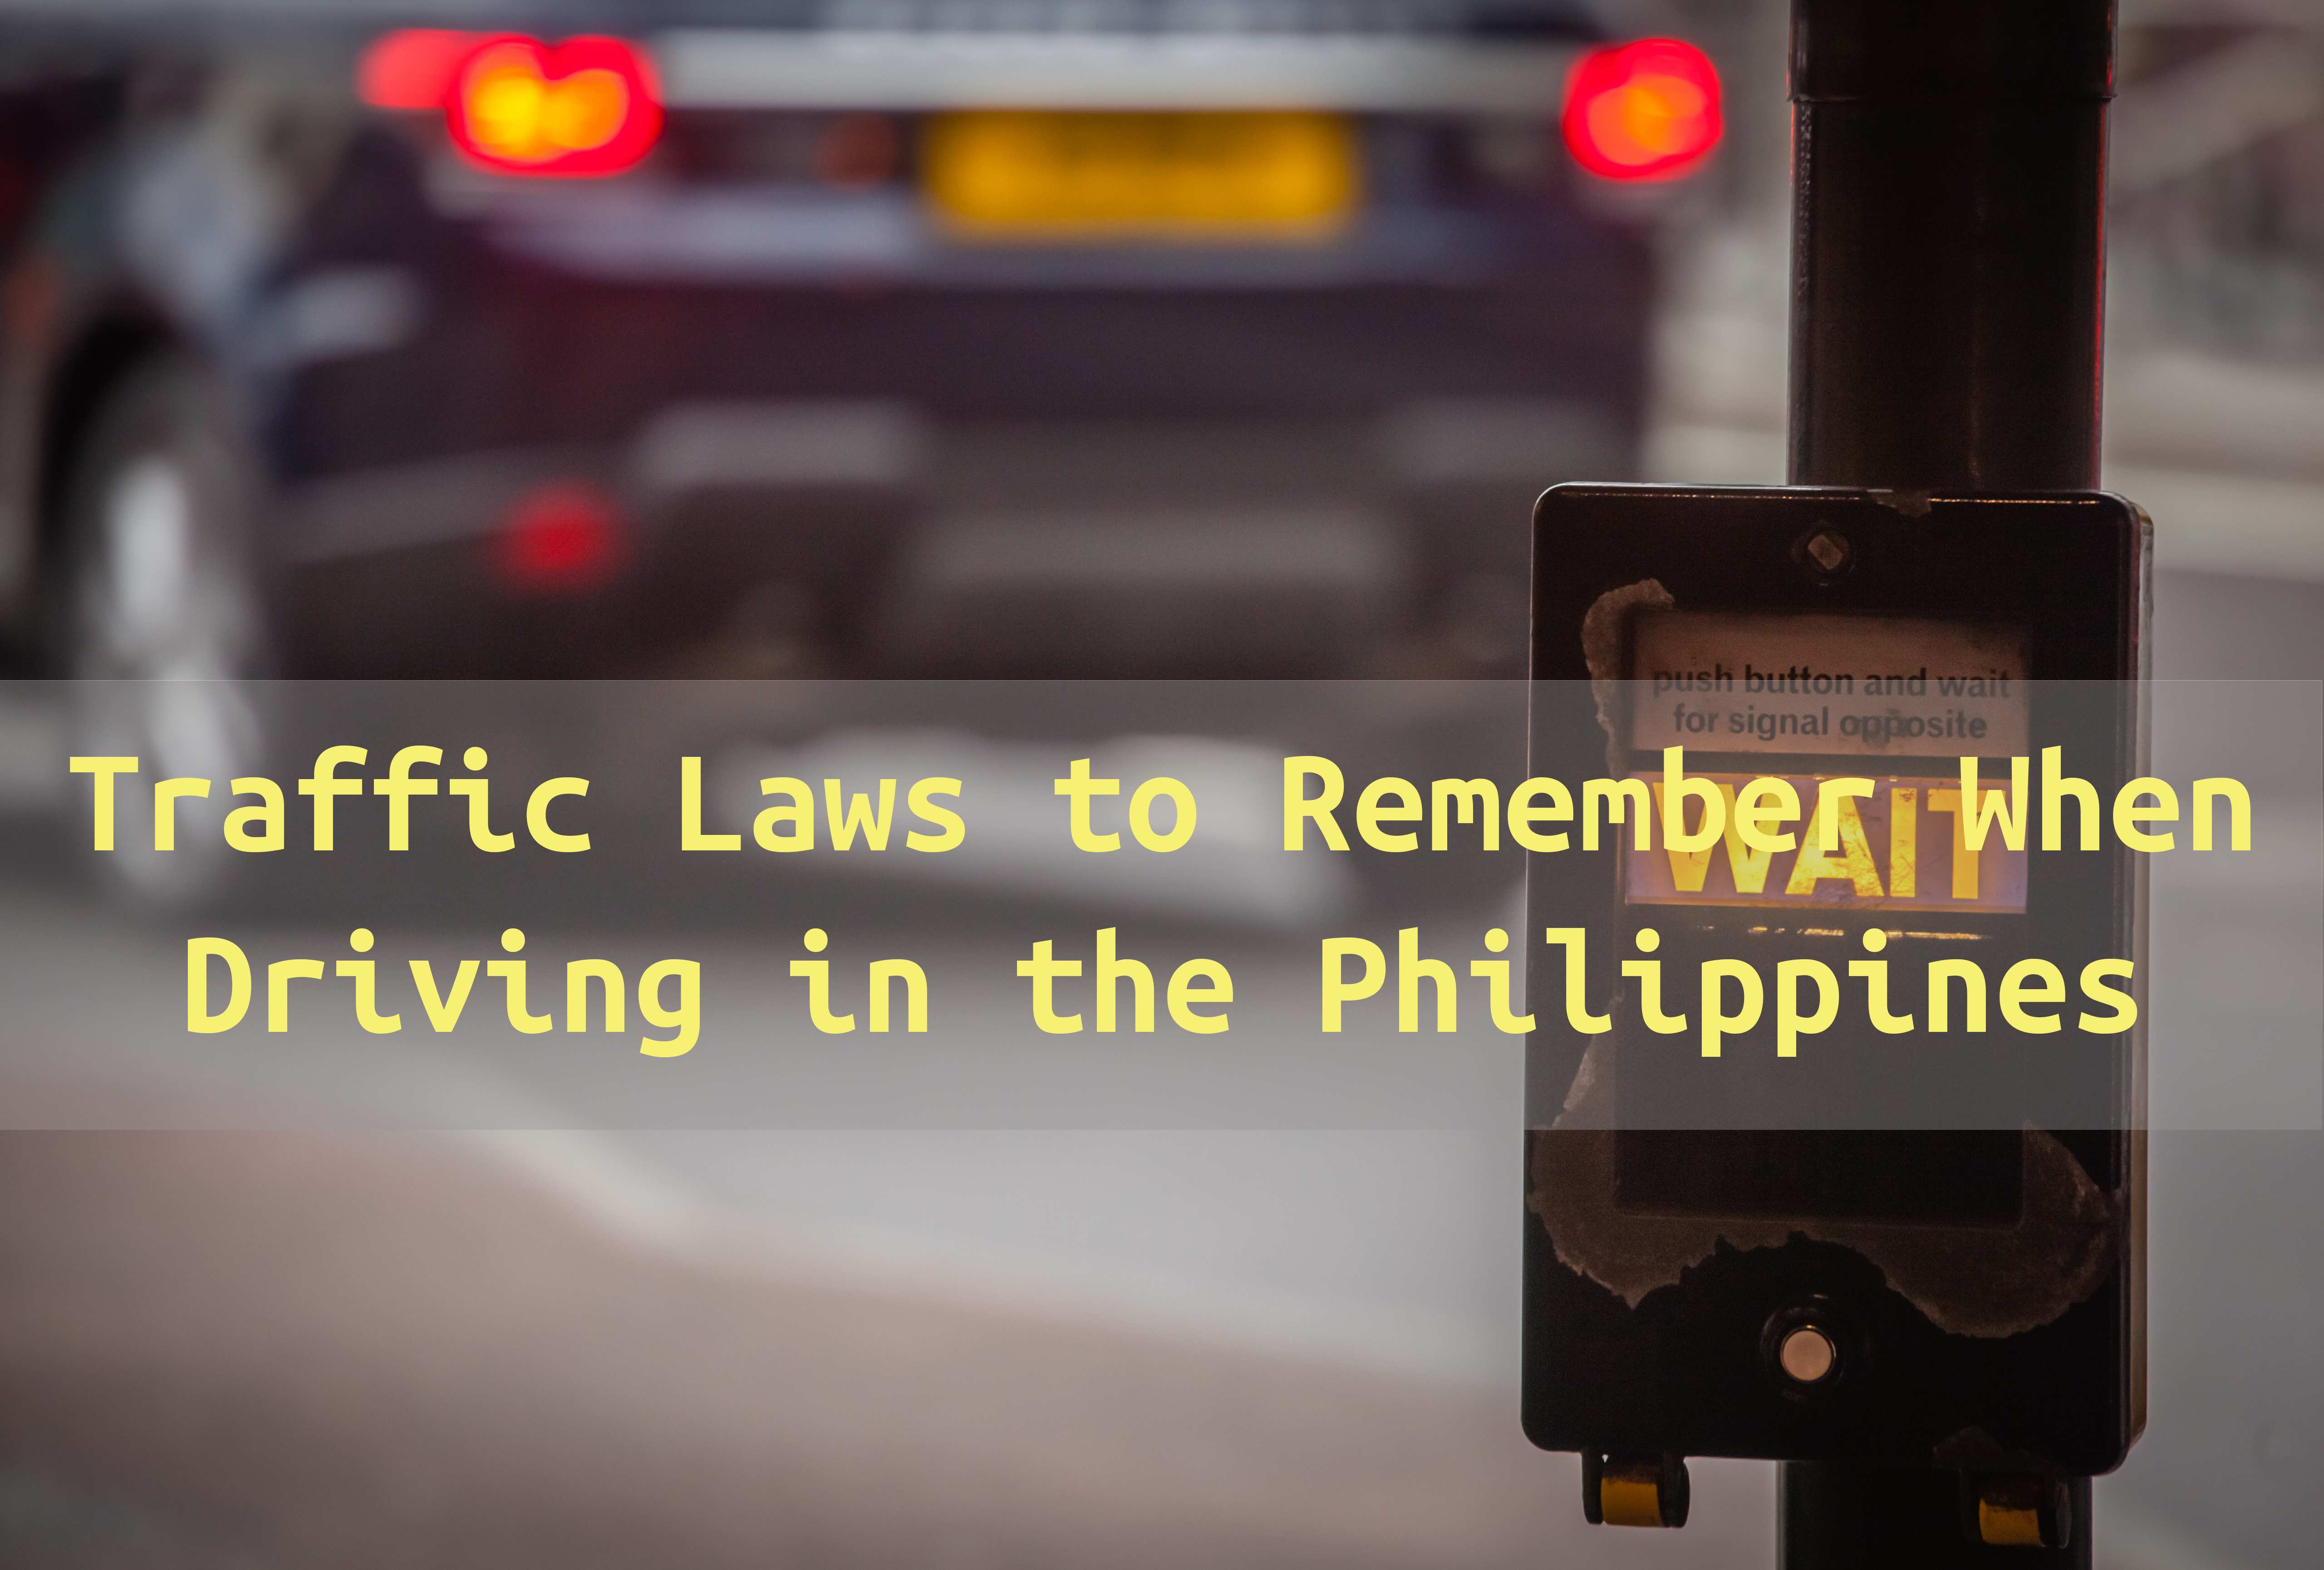 pedestrian-crossing-sign-traffic-law-sign-featured-image